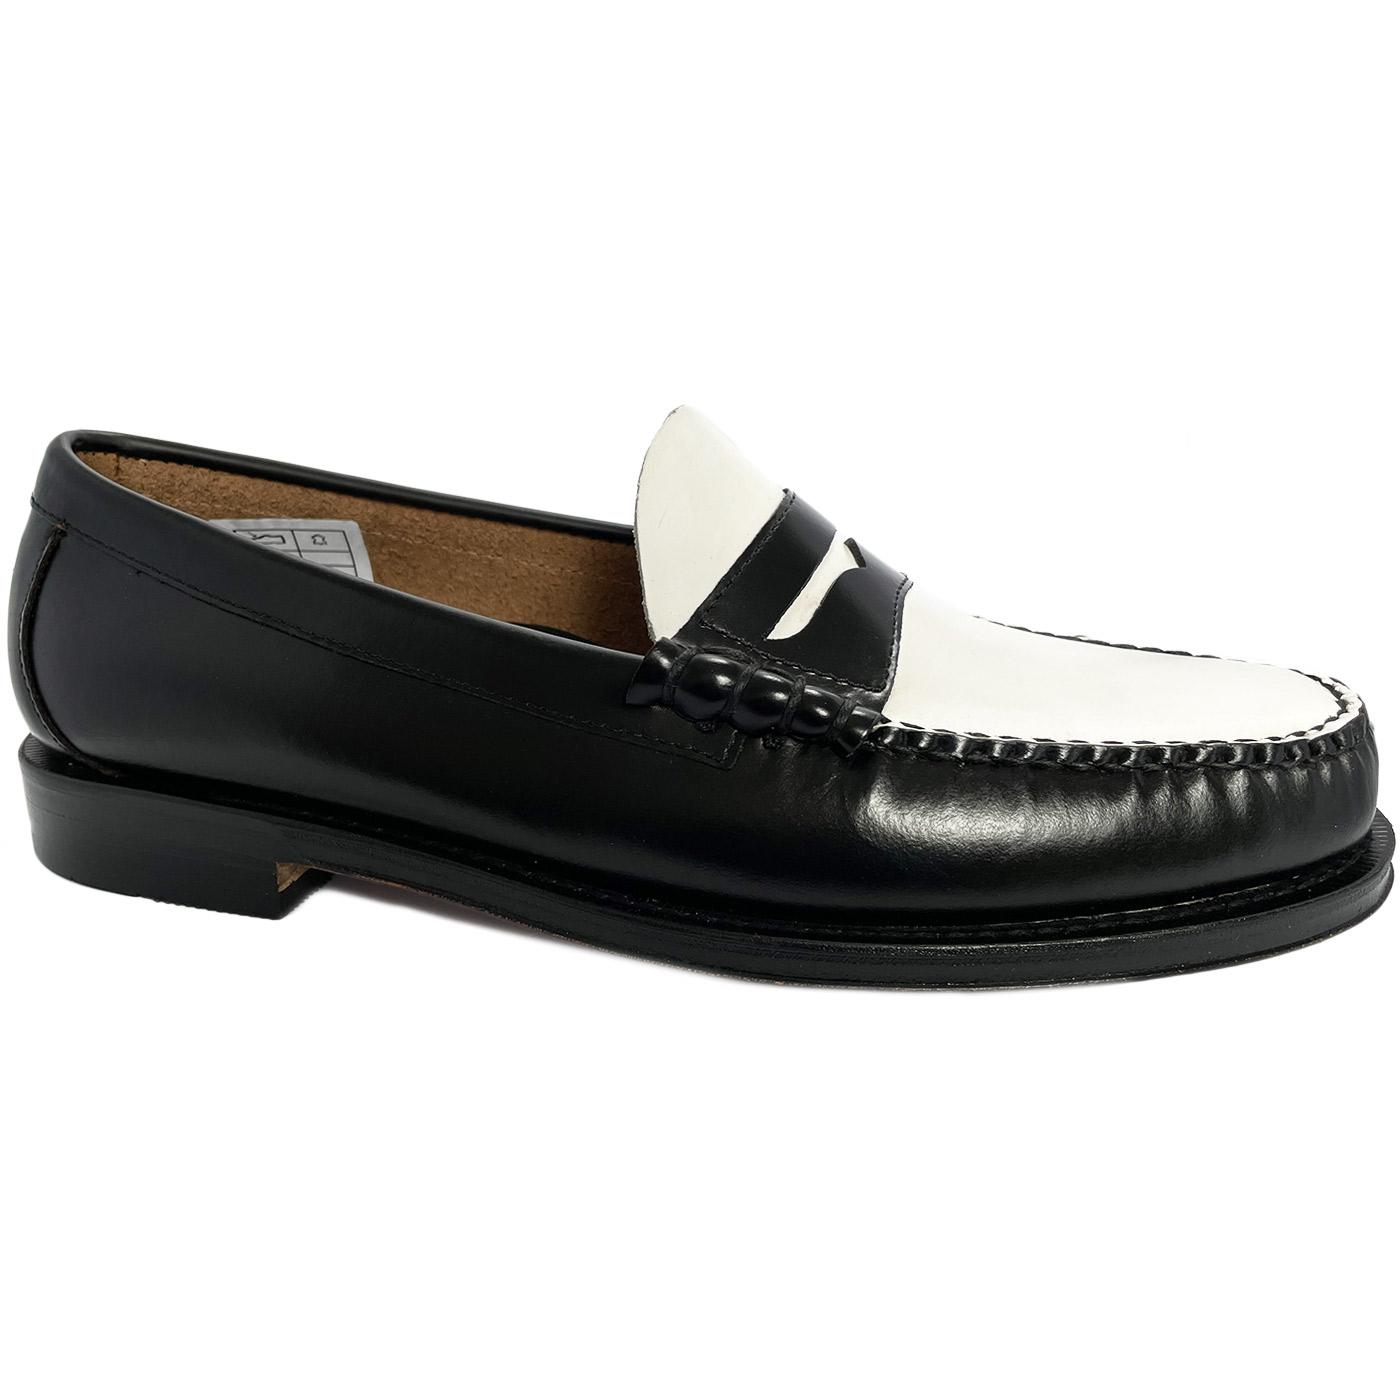 Larson BASS WEEJUNS Two Tone Mod Penny Loafers